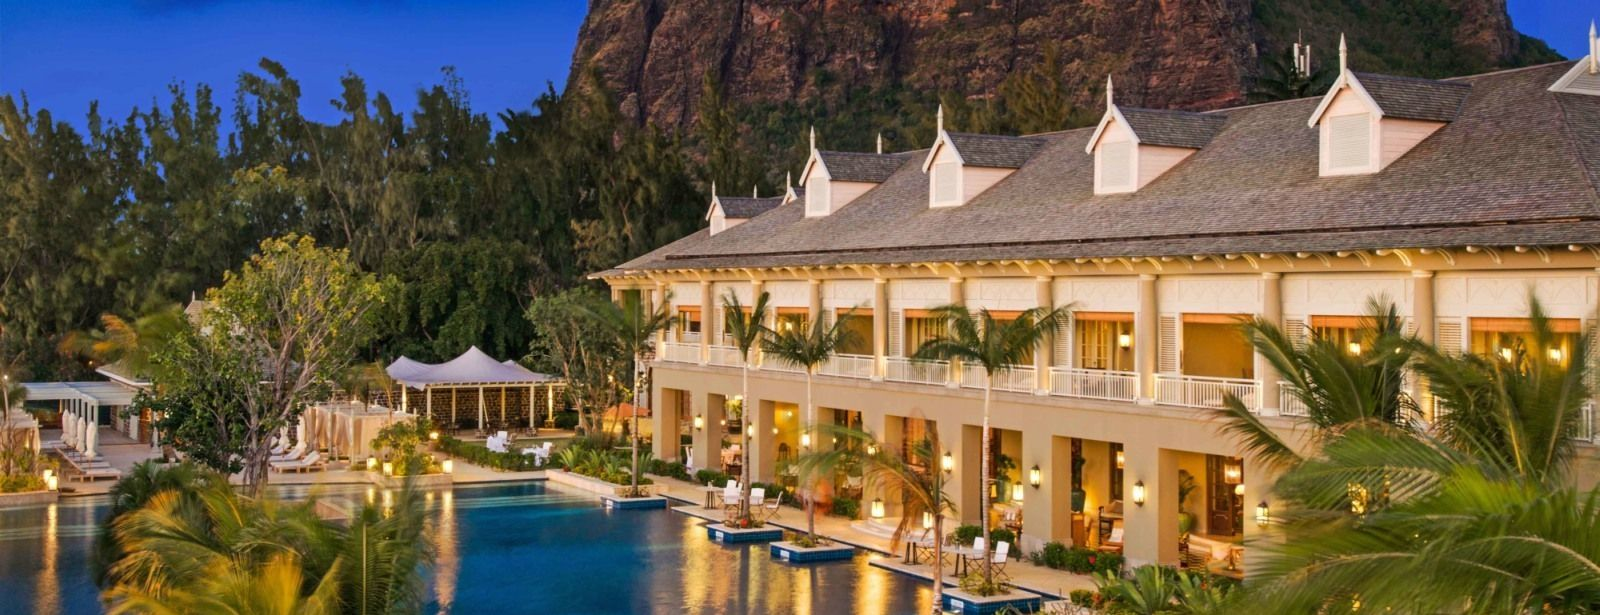 St. Regis Mauritius Manor House Exterior View at Twilight